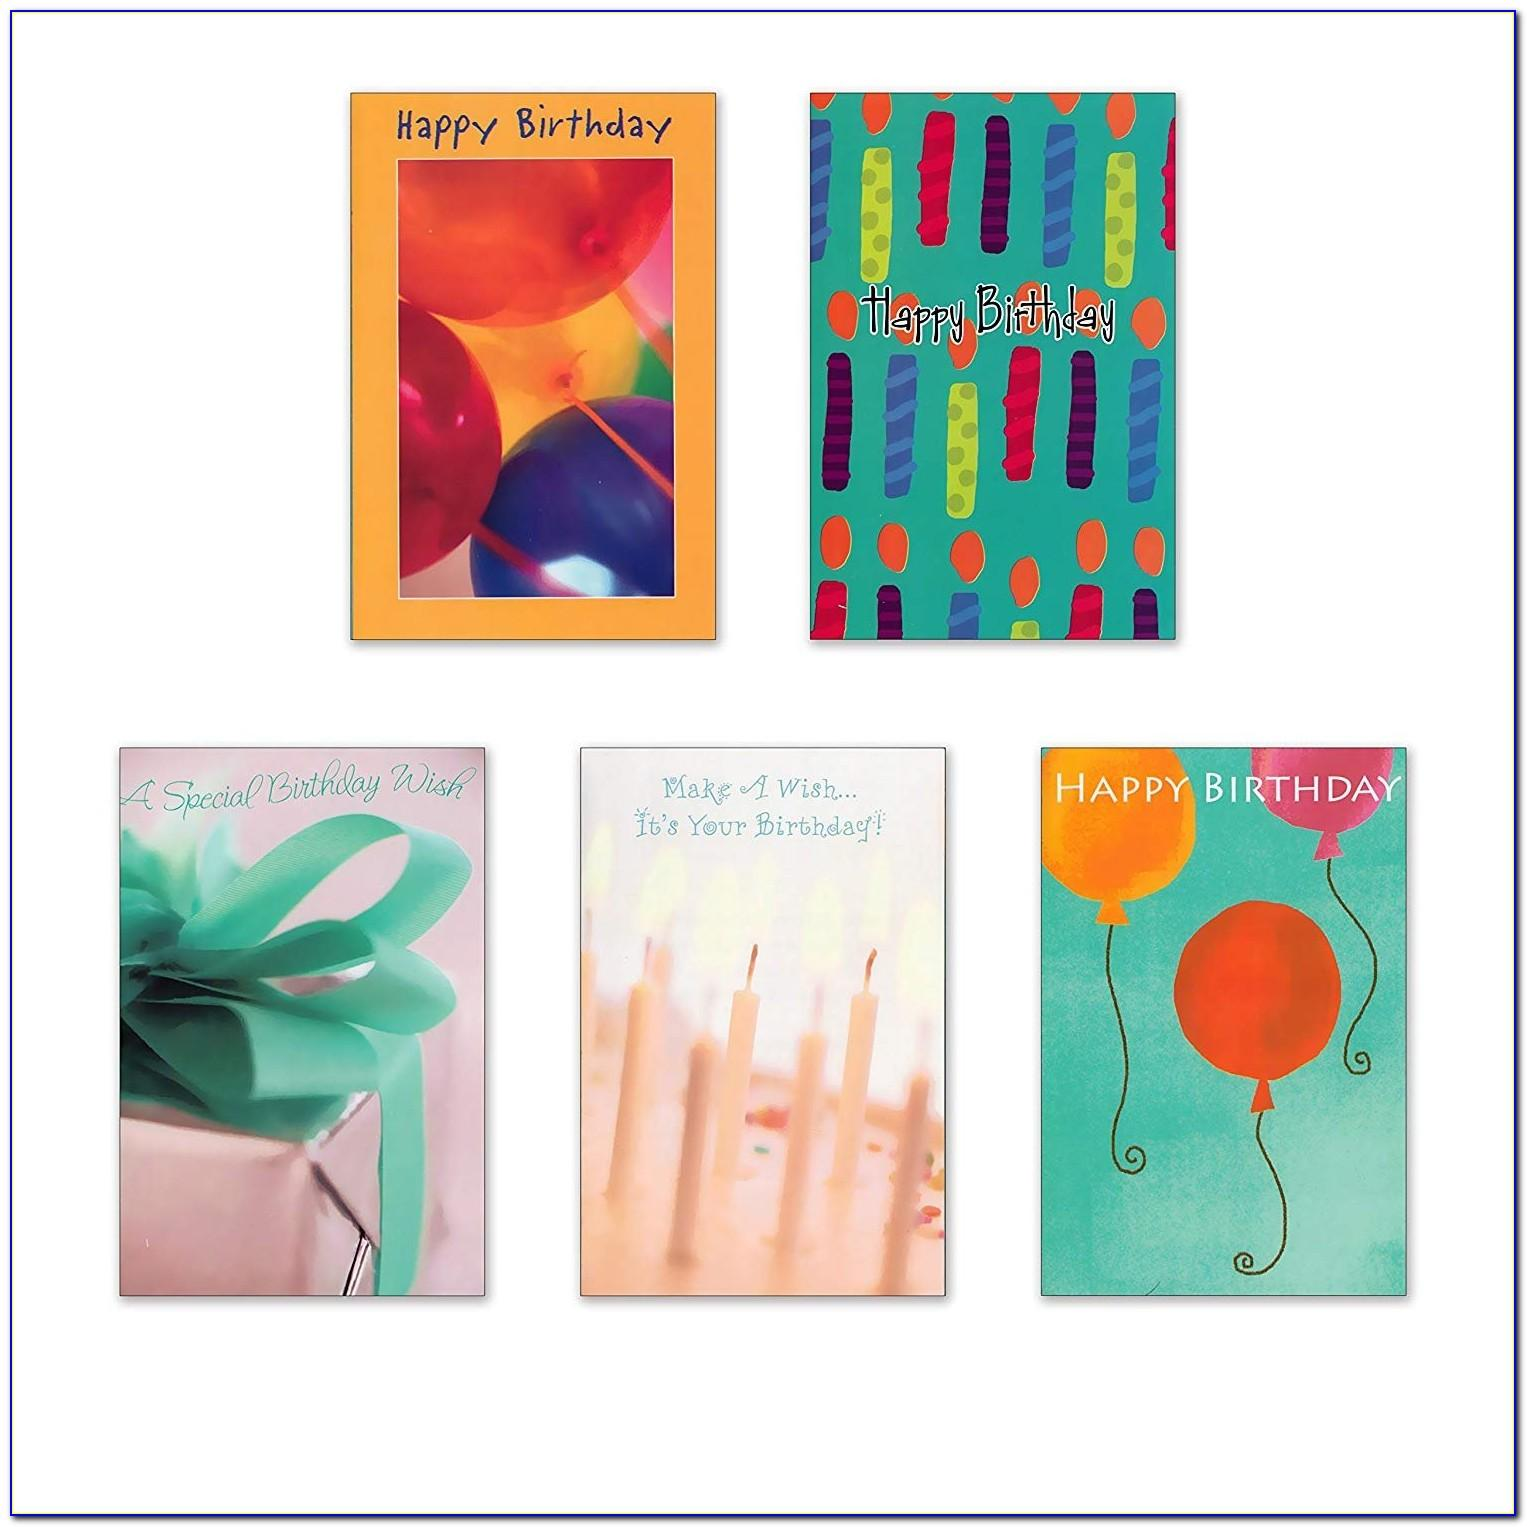 Fantus Paper Products Birthday Cards